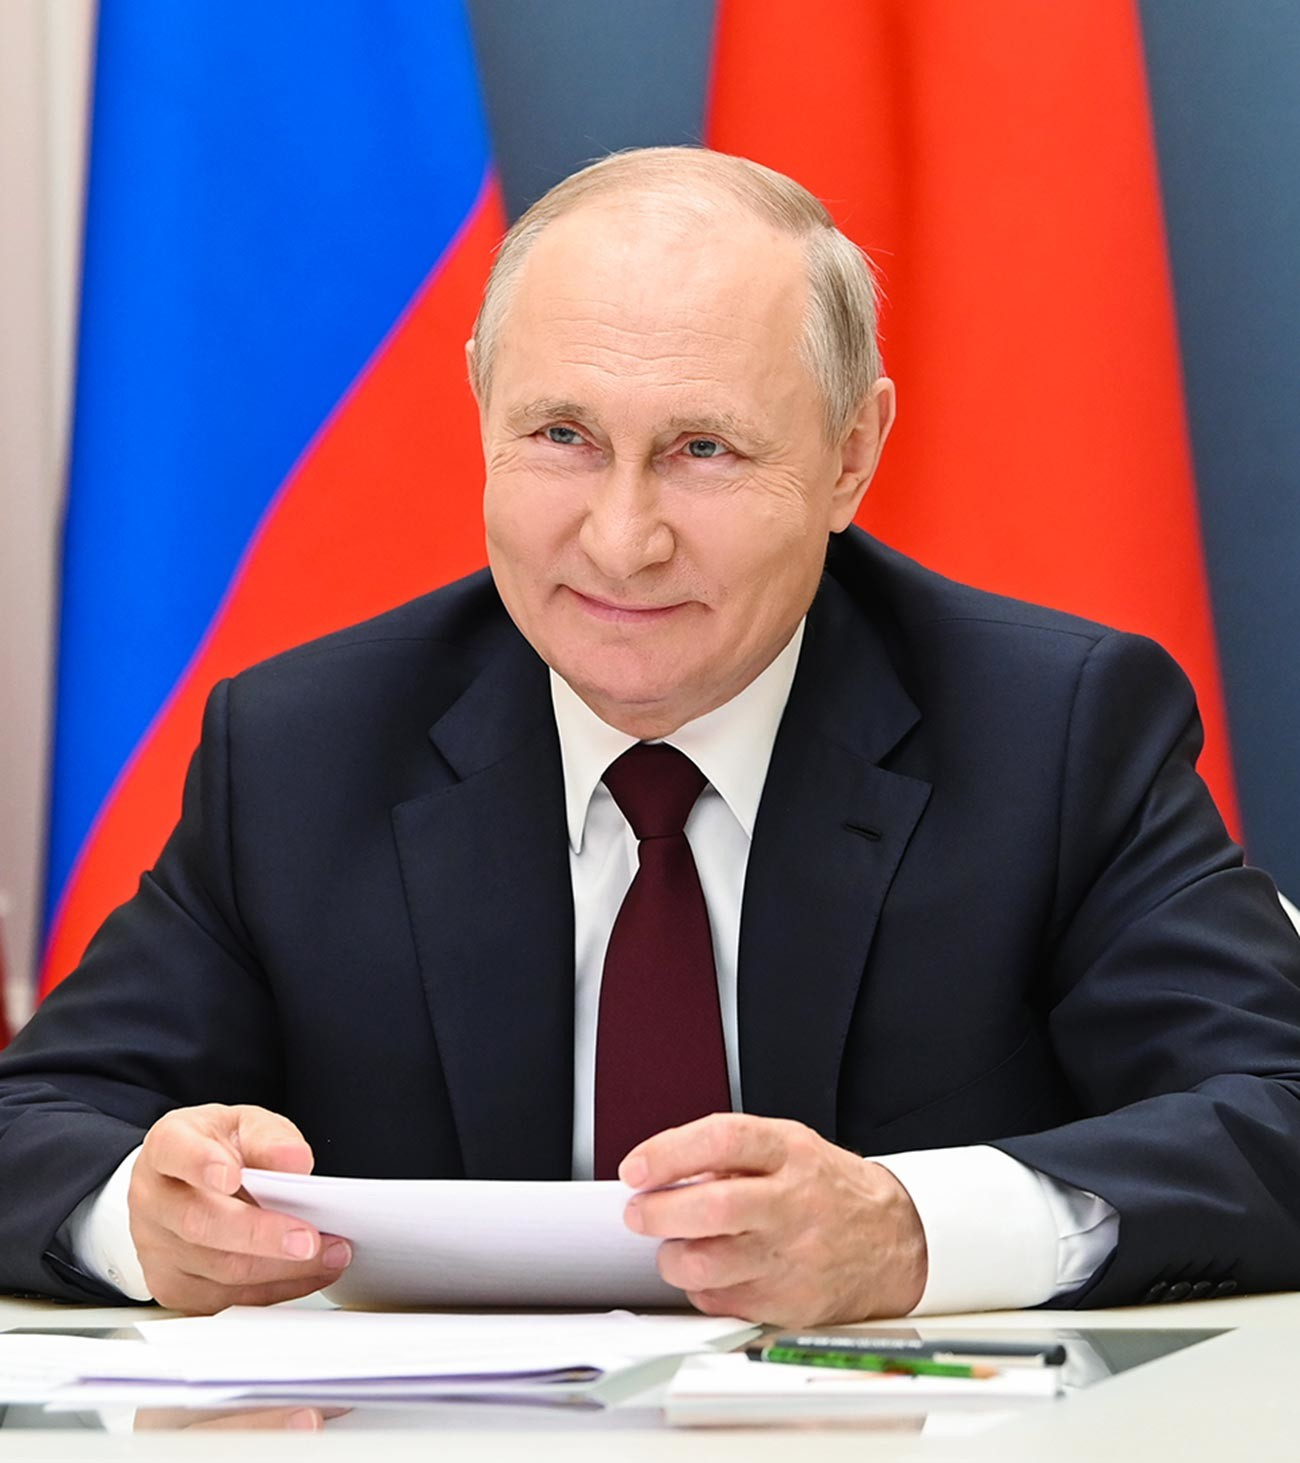 June 28, 2021. Russian President Vladimir Putin during a videoconference conversation with Chinese President Xi Jinping.